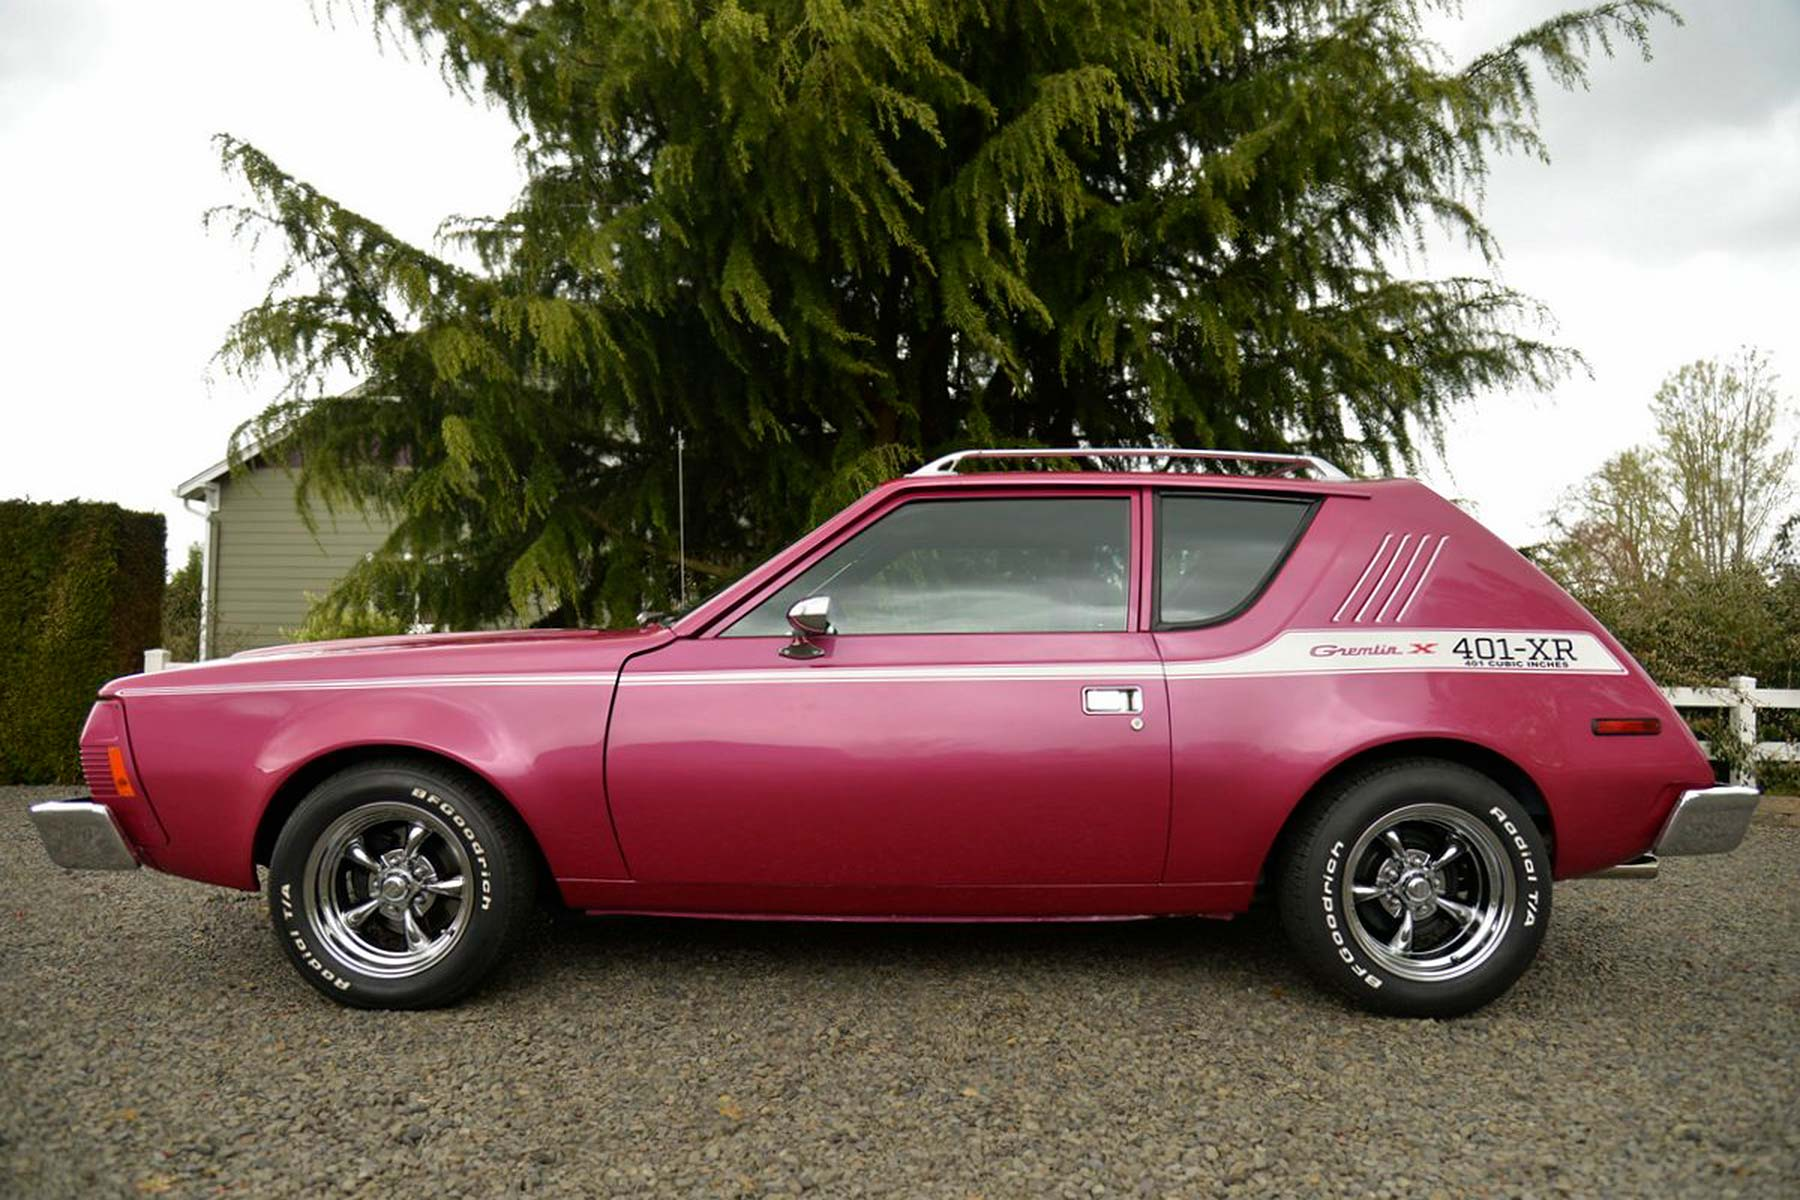 Rarest Gremlin in the world headed to auction | Motoring Research